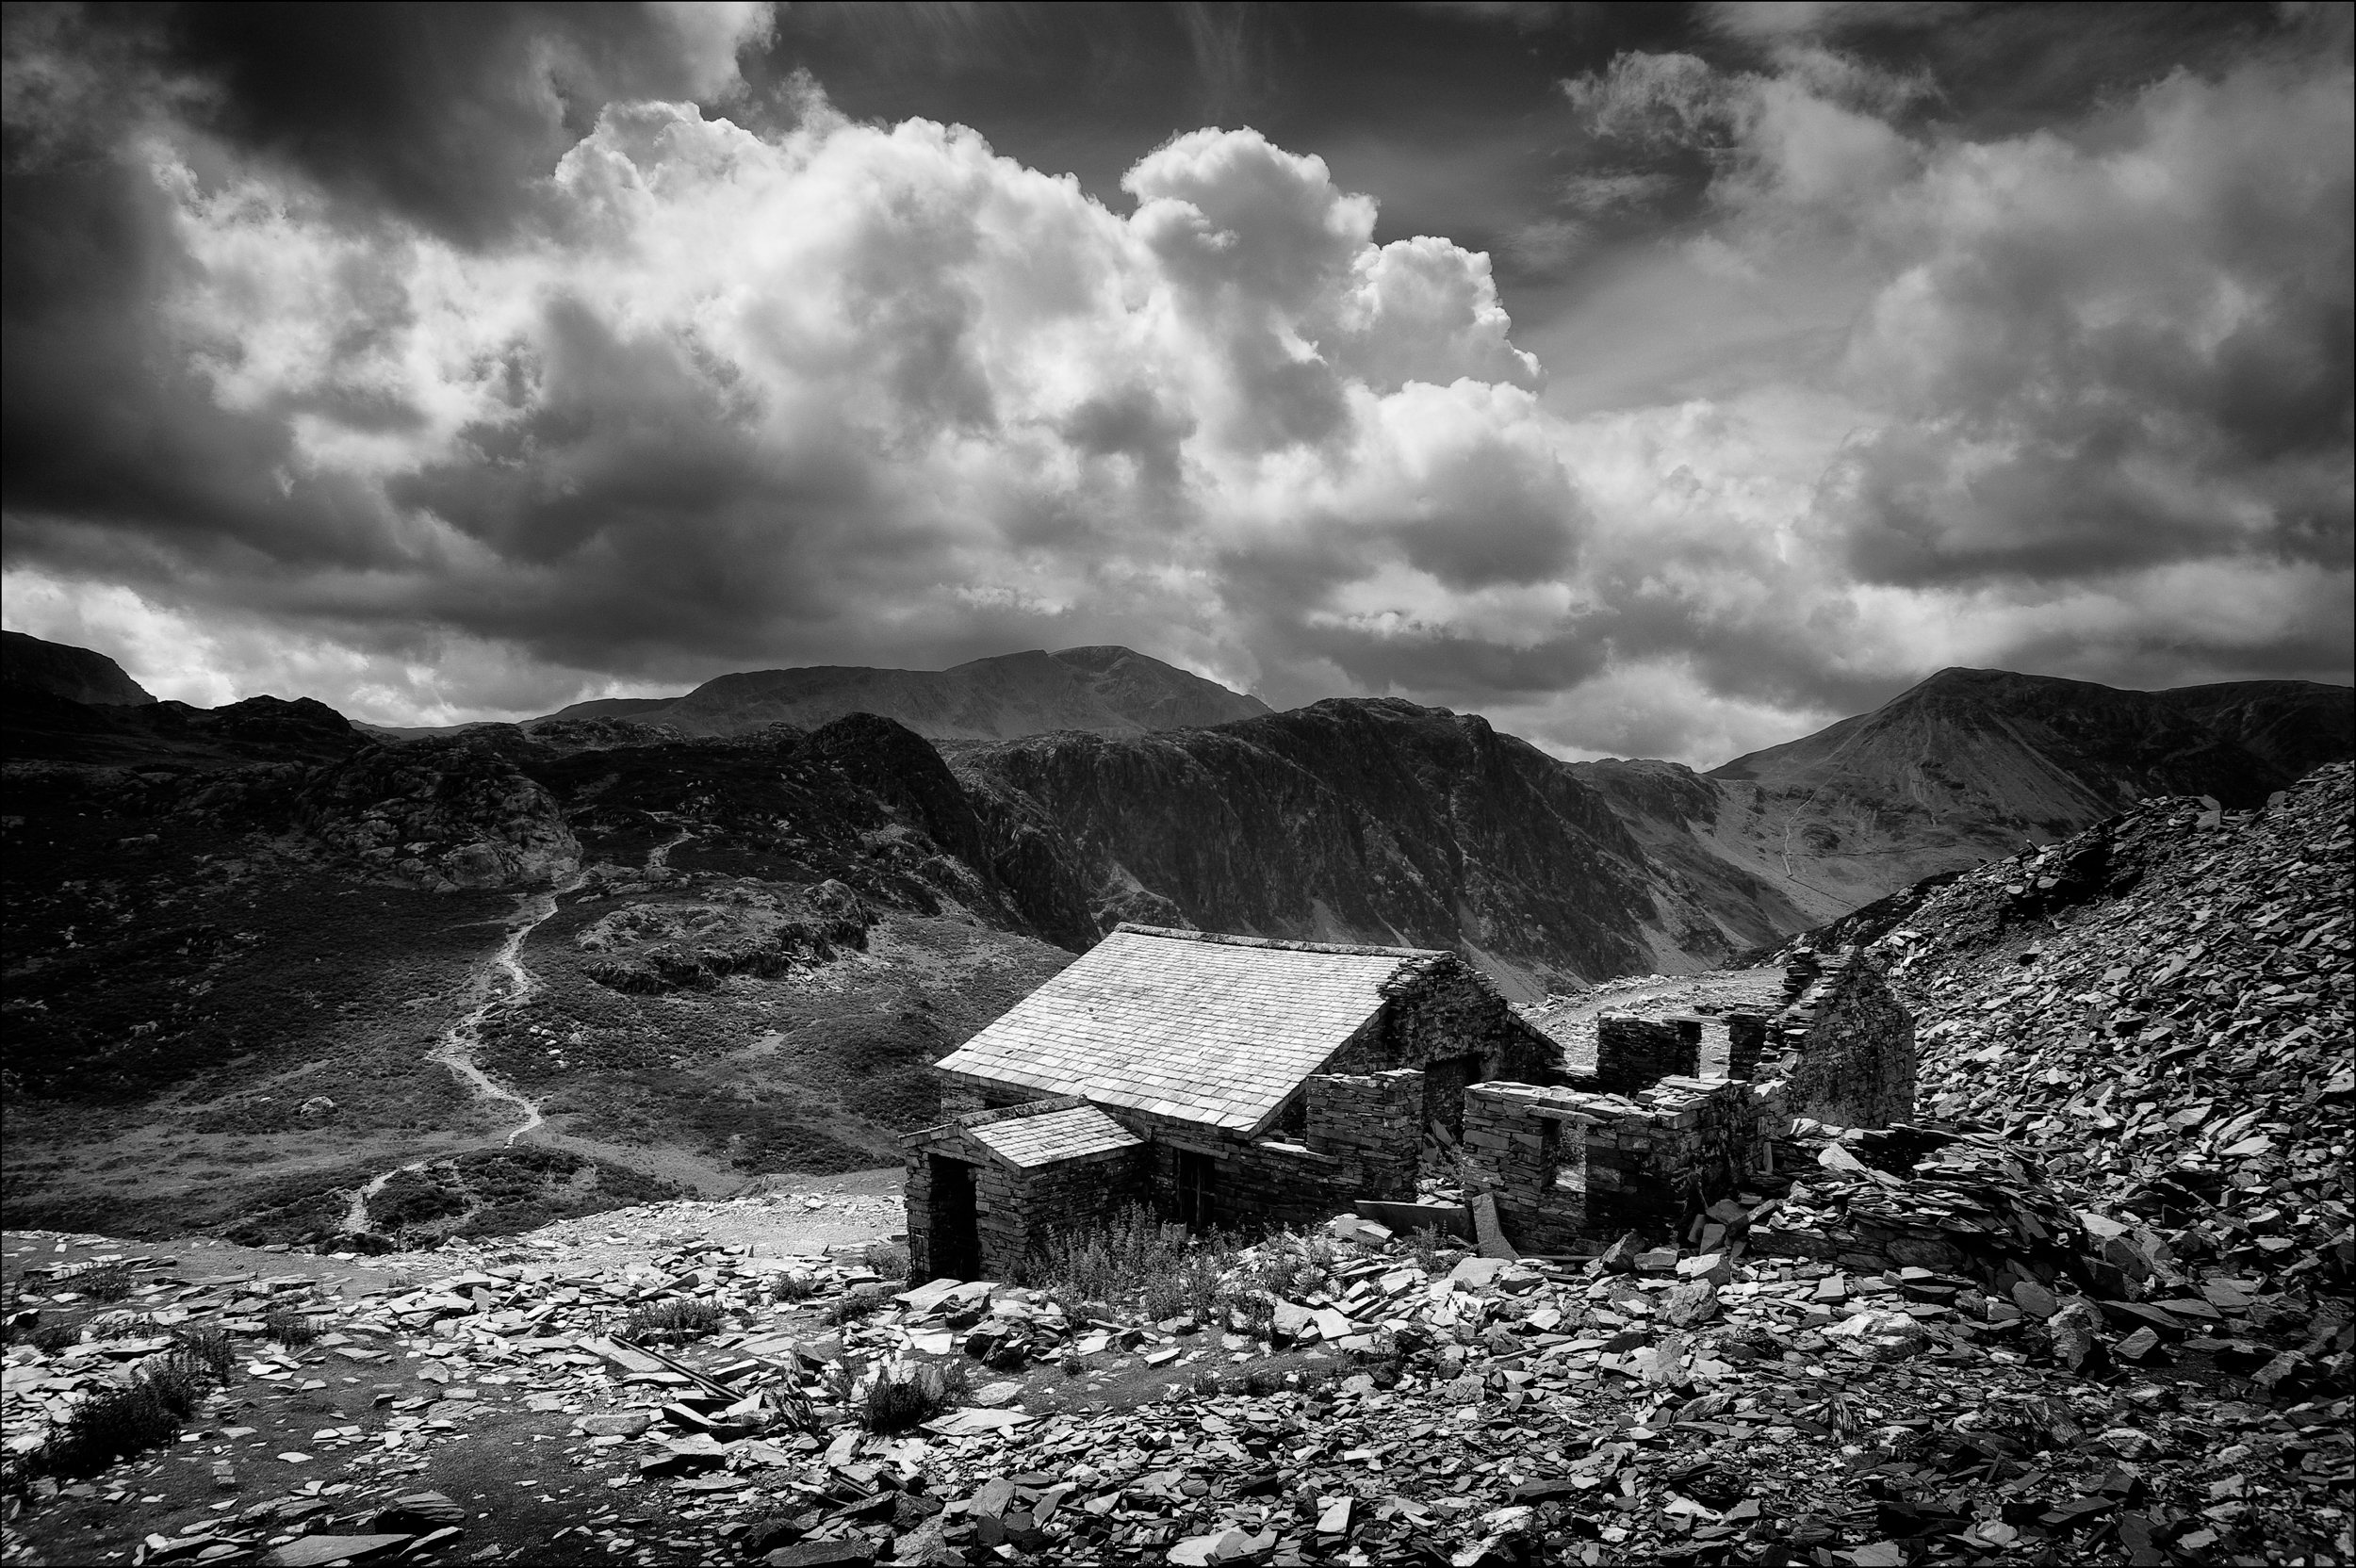 Dubs quarry and Haystacks